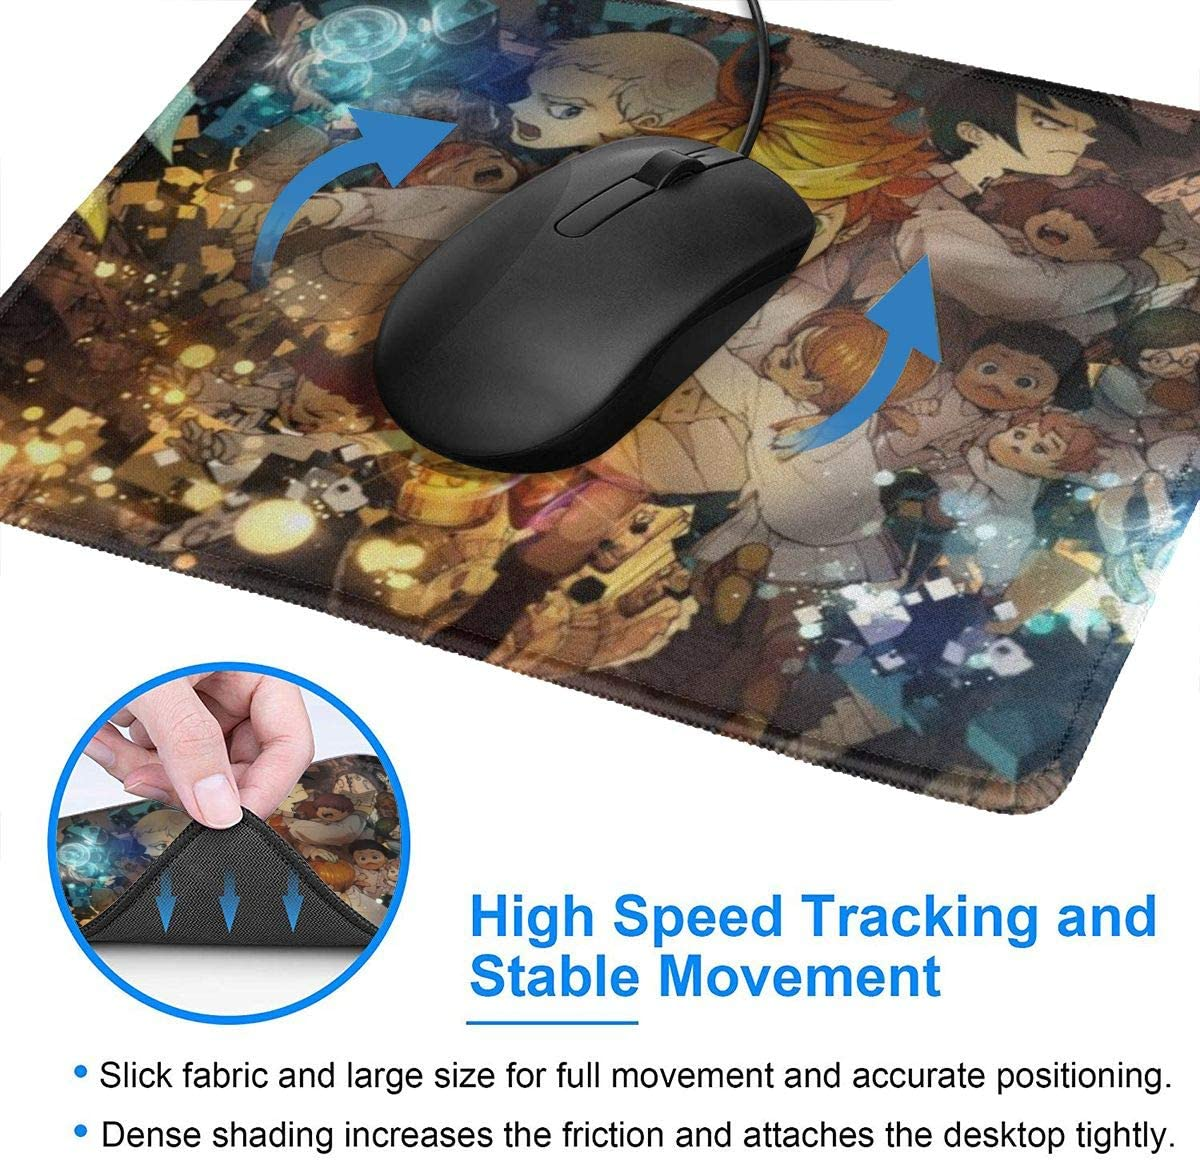 The Promised Neverland Mouse Pad Rectangle Mouse Mat for Computer Desk Laptop Office 7 X 8.6 in Non-Slip Rubber